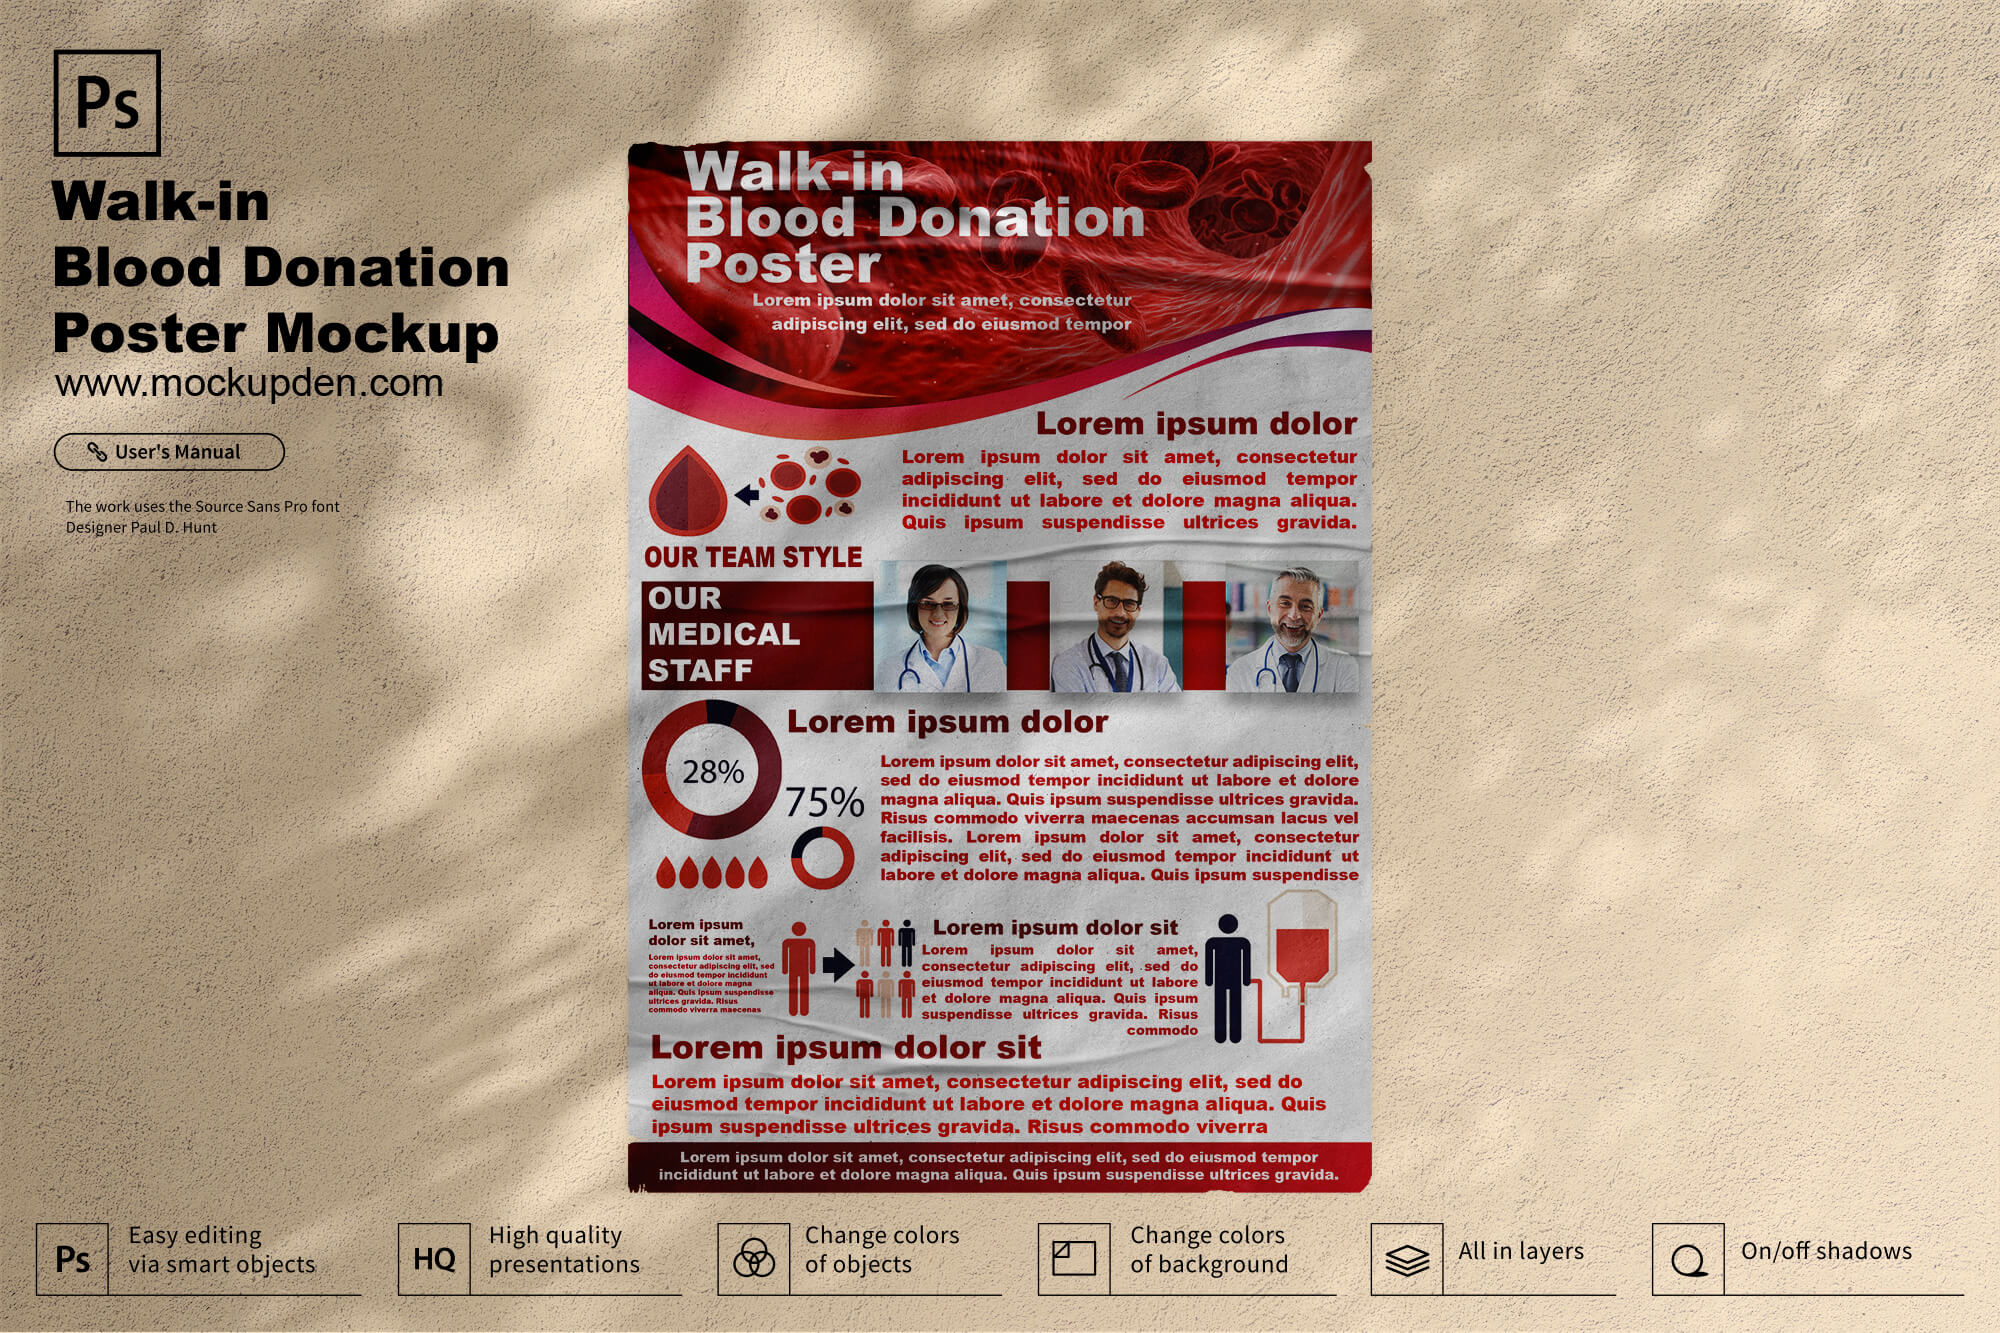 Free Walk-in Blood Donation Poster Mockup PSD Template